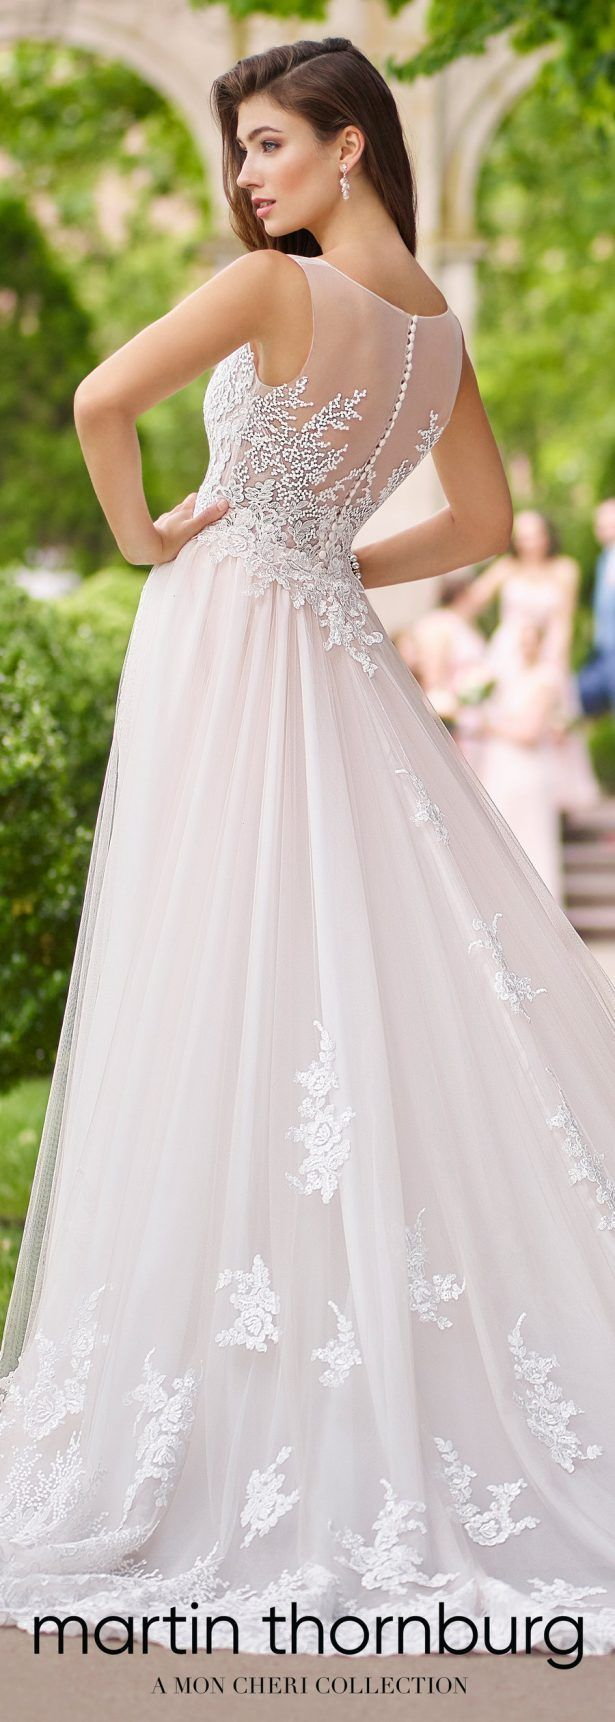 Lace wedding dress for plus size january 2019  best Ślub images on Pinterest  Homecoming dresses straps